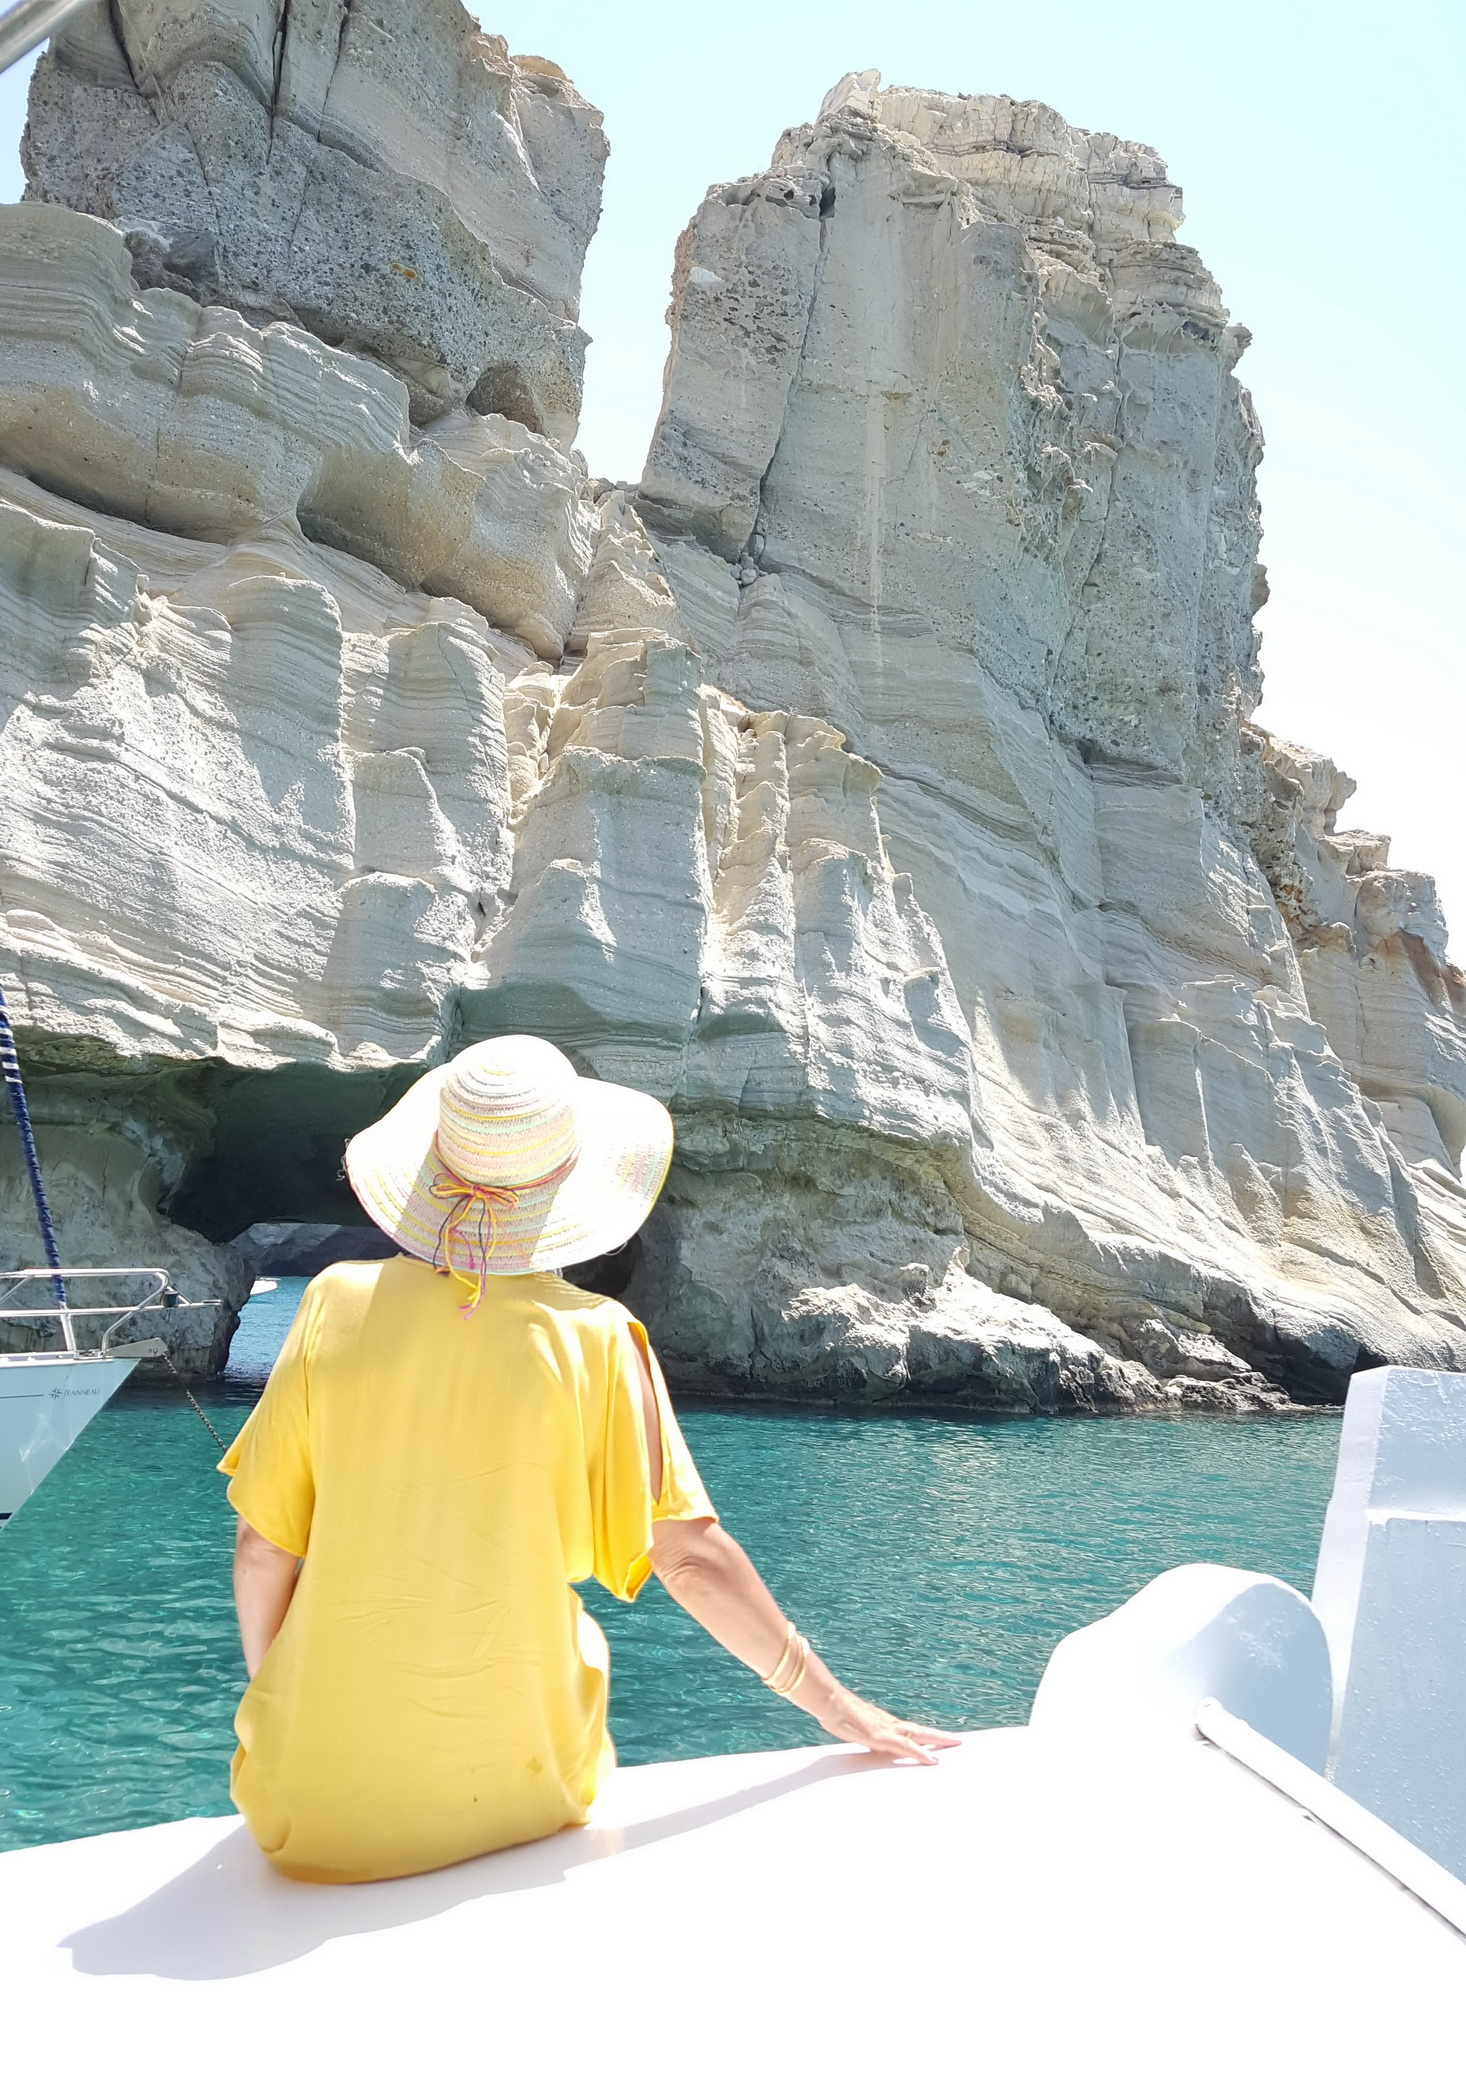 Kliftico Greek traveller in Milos